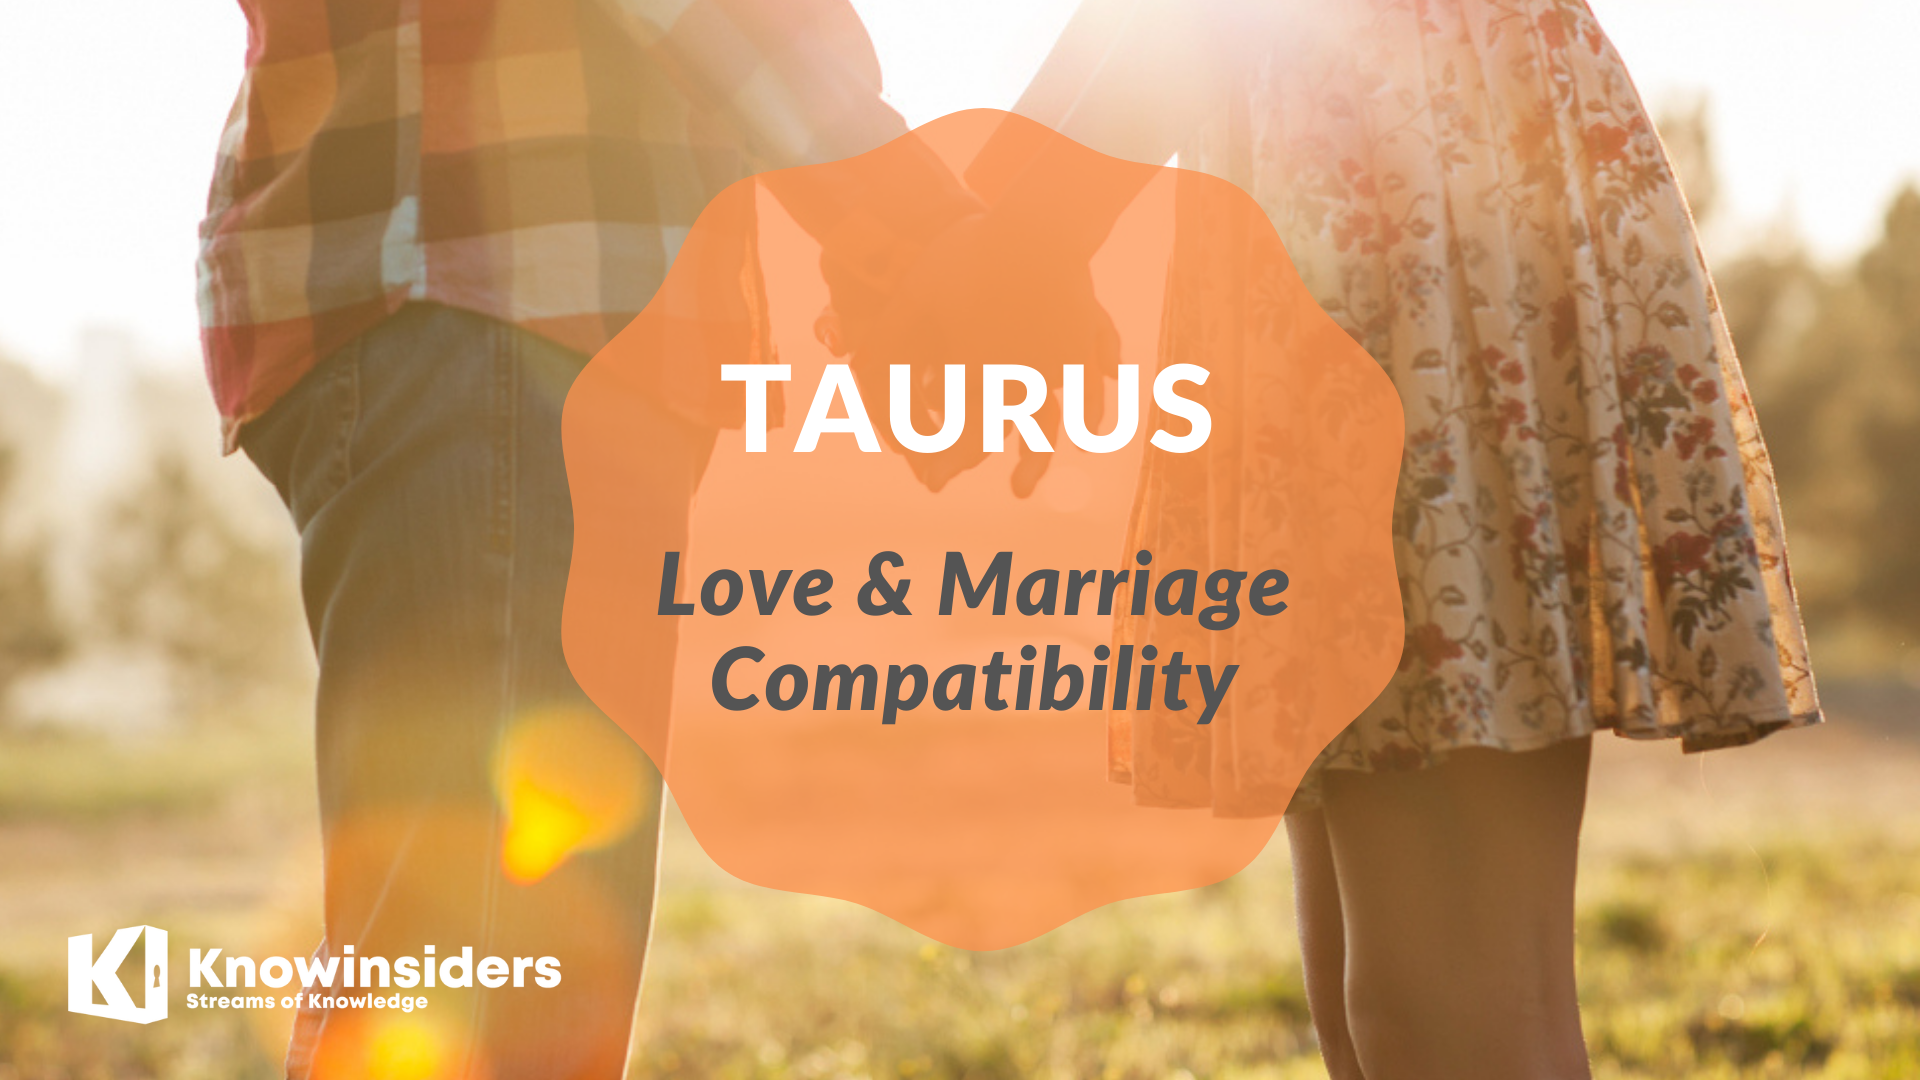 TAURUS - Top 3 Most Compatible Zodiac Signs for Love & Marriage